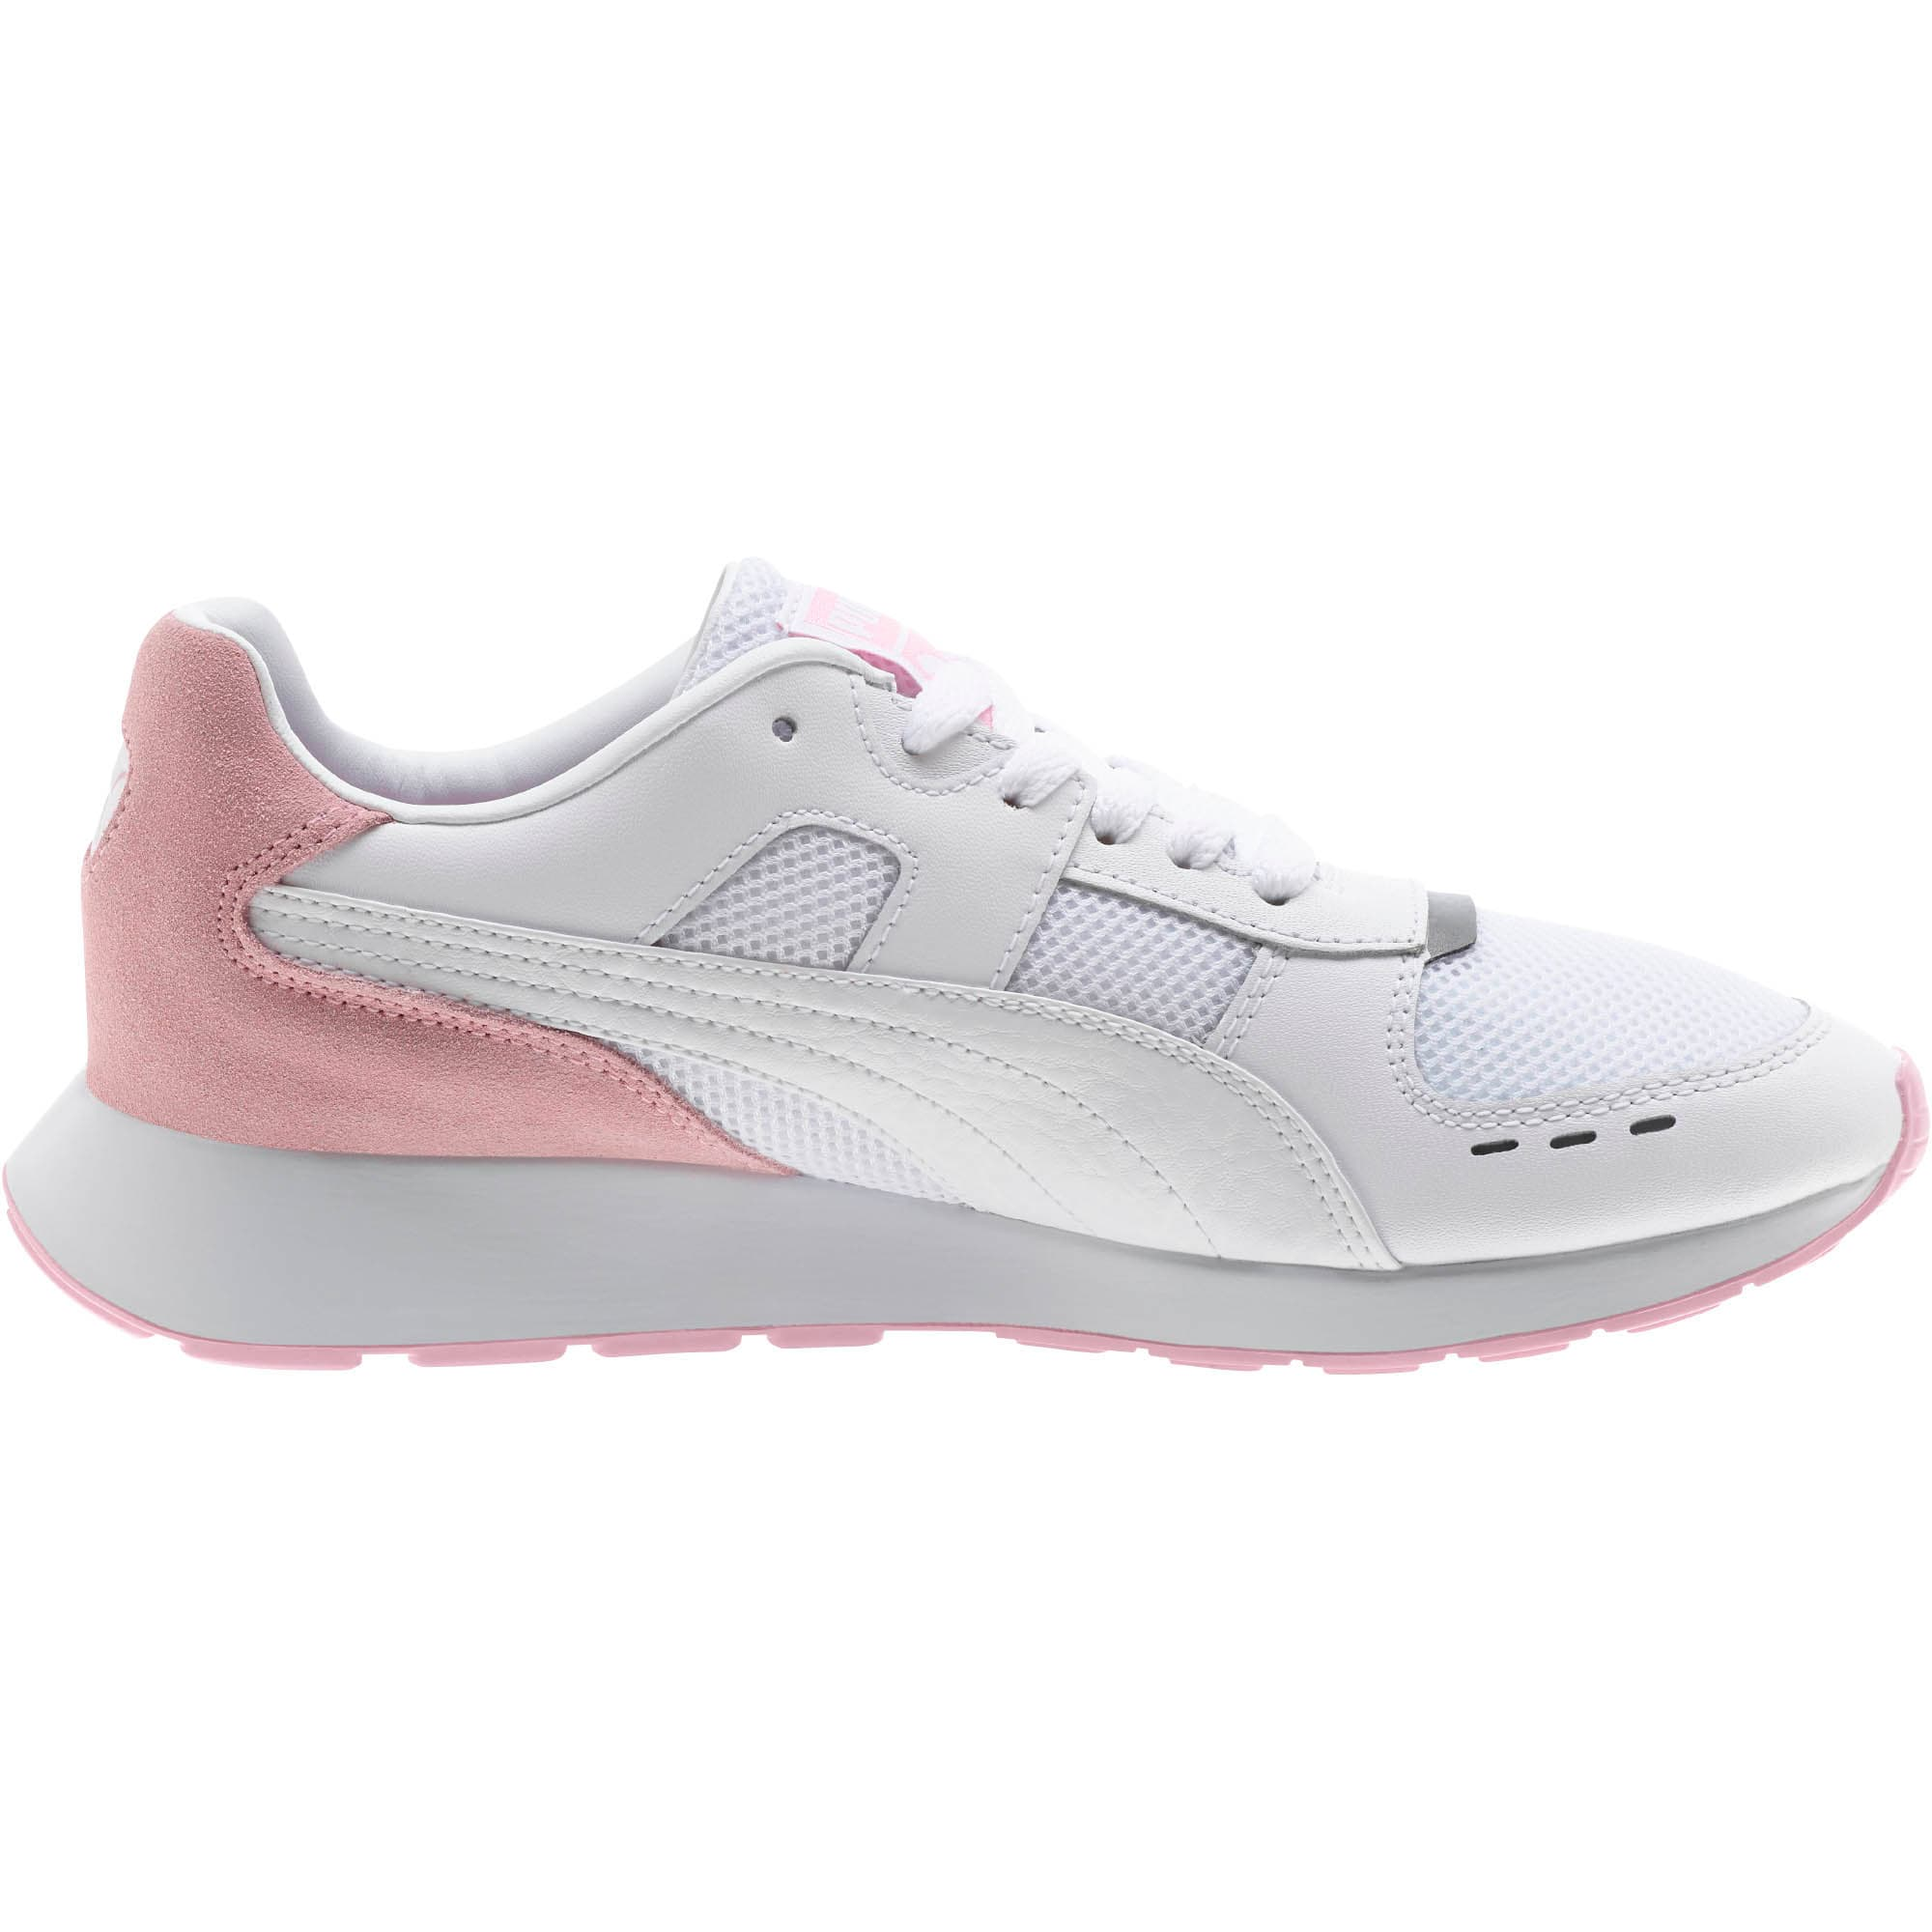 Thumbnail 4 of RS-150 Contrast Women's Sneakers, Puma White-Pale Pink, medium